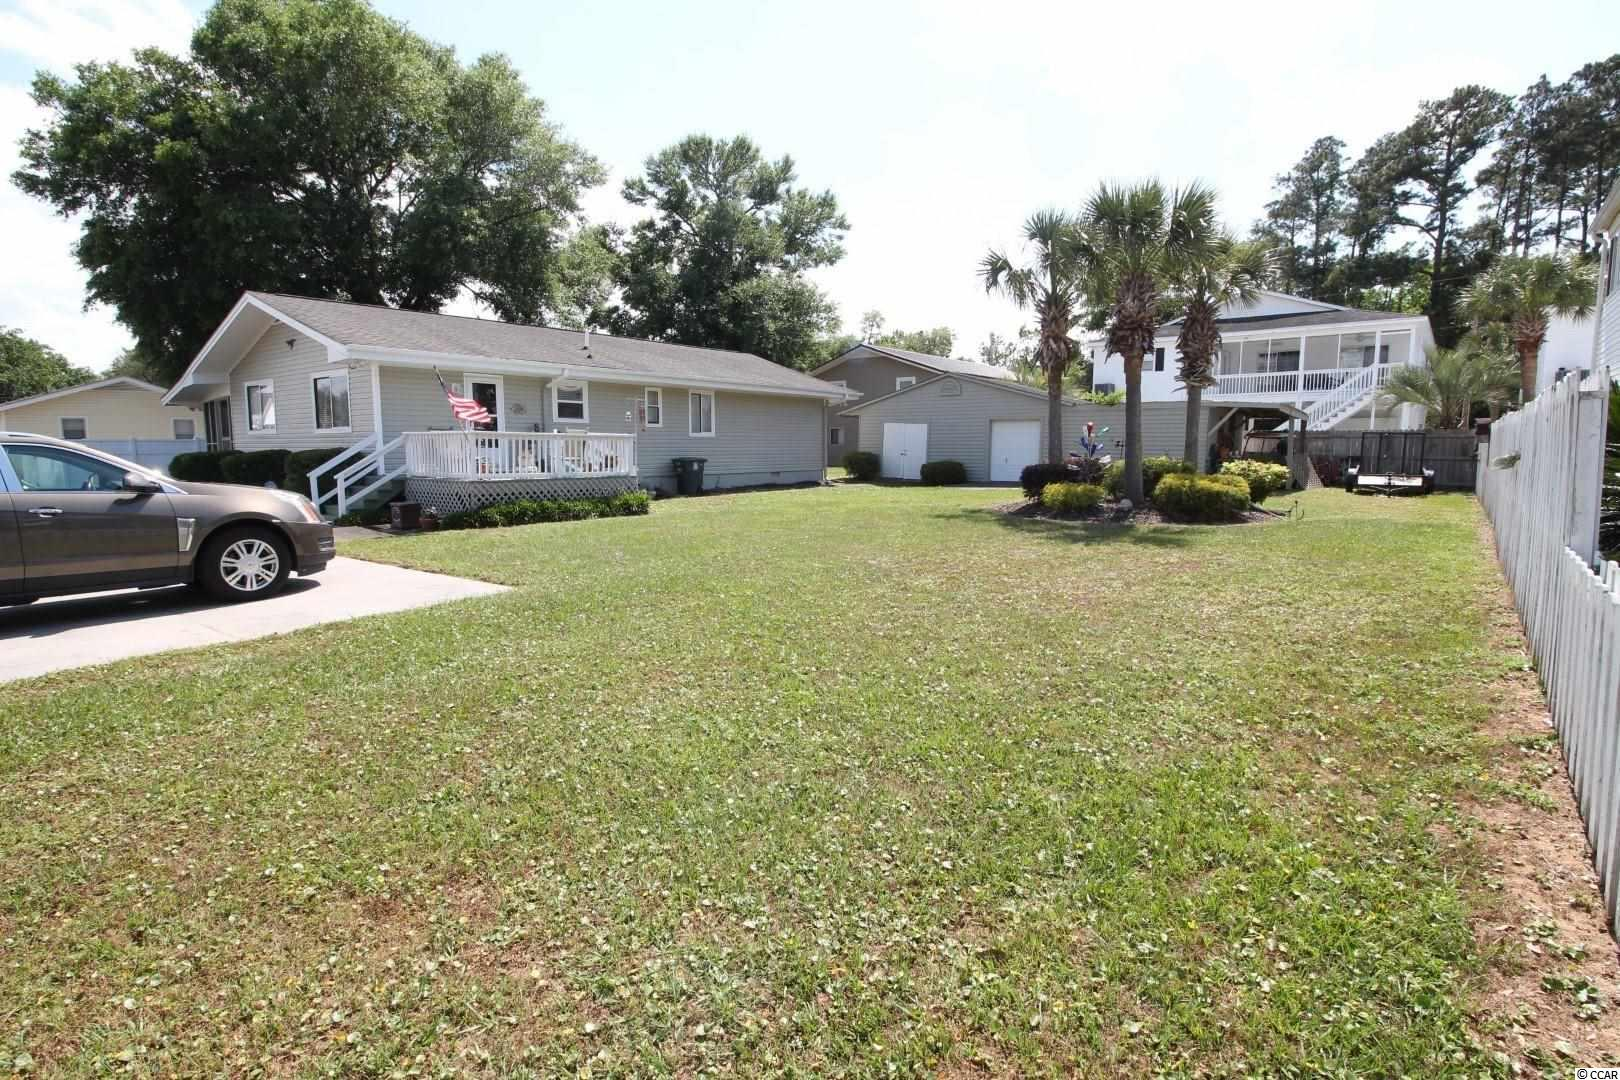 Nice cozy 4Br/2Bath home that is (3-1/2 Blocks) walking distance to the beach, Sea Mountain Hwy and Boulineau's. Large screened porch, 12x12 Deck, 16x40 Shed, excellent living space. SOLD WITH ADDITIONAL LOT NEXT DOOR. Properties in this area don't come on the market very often. BRING ALL OFFERS!